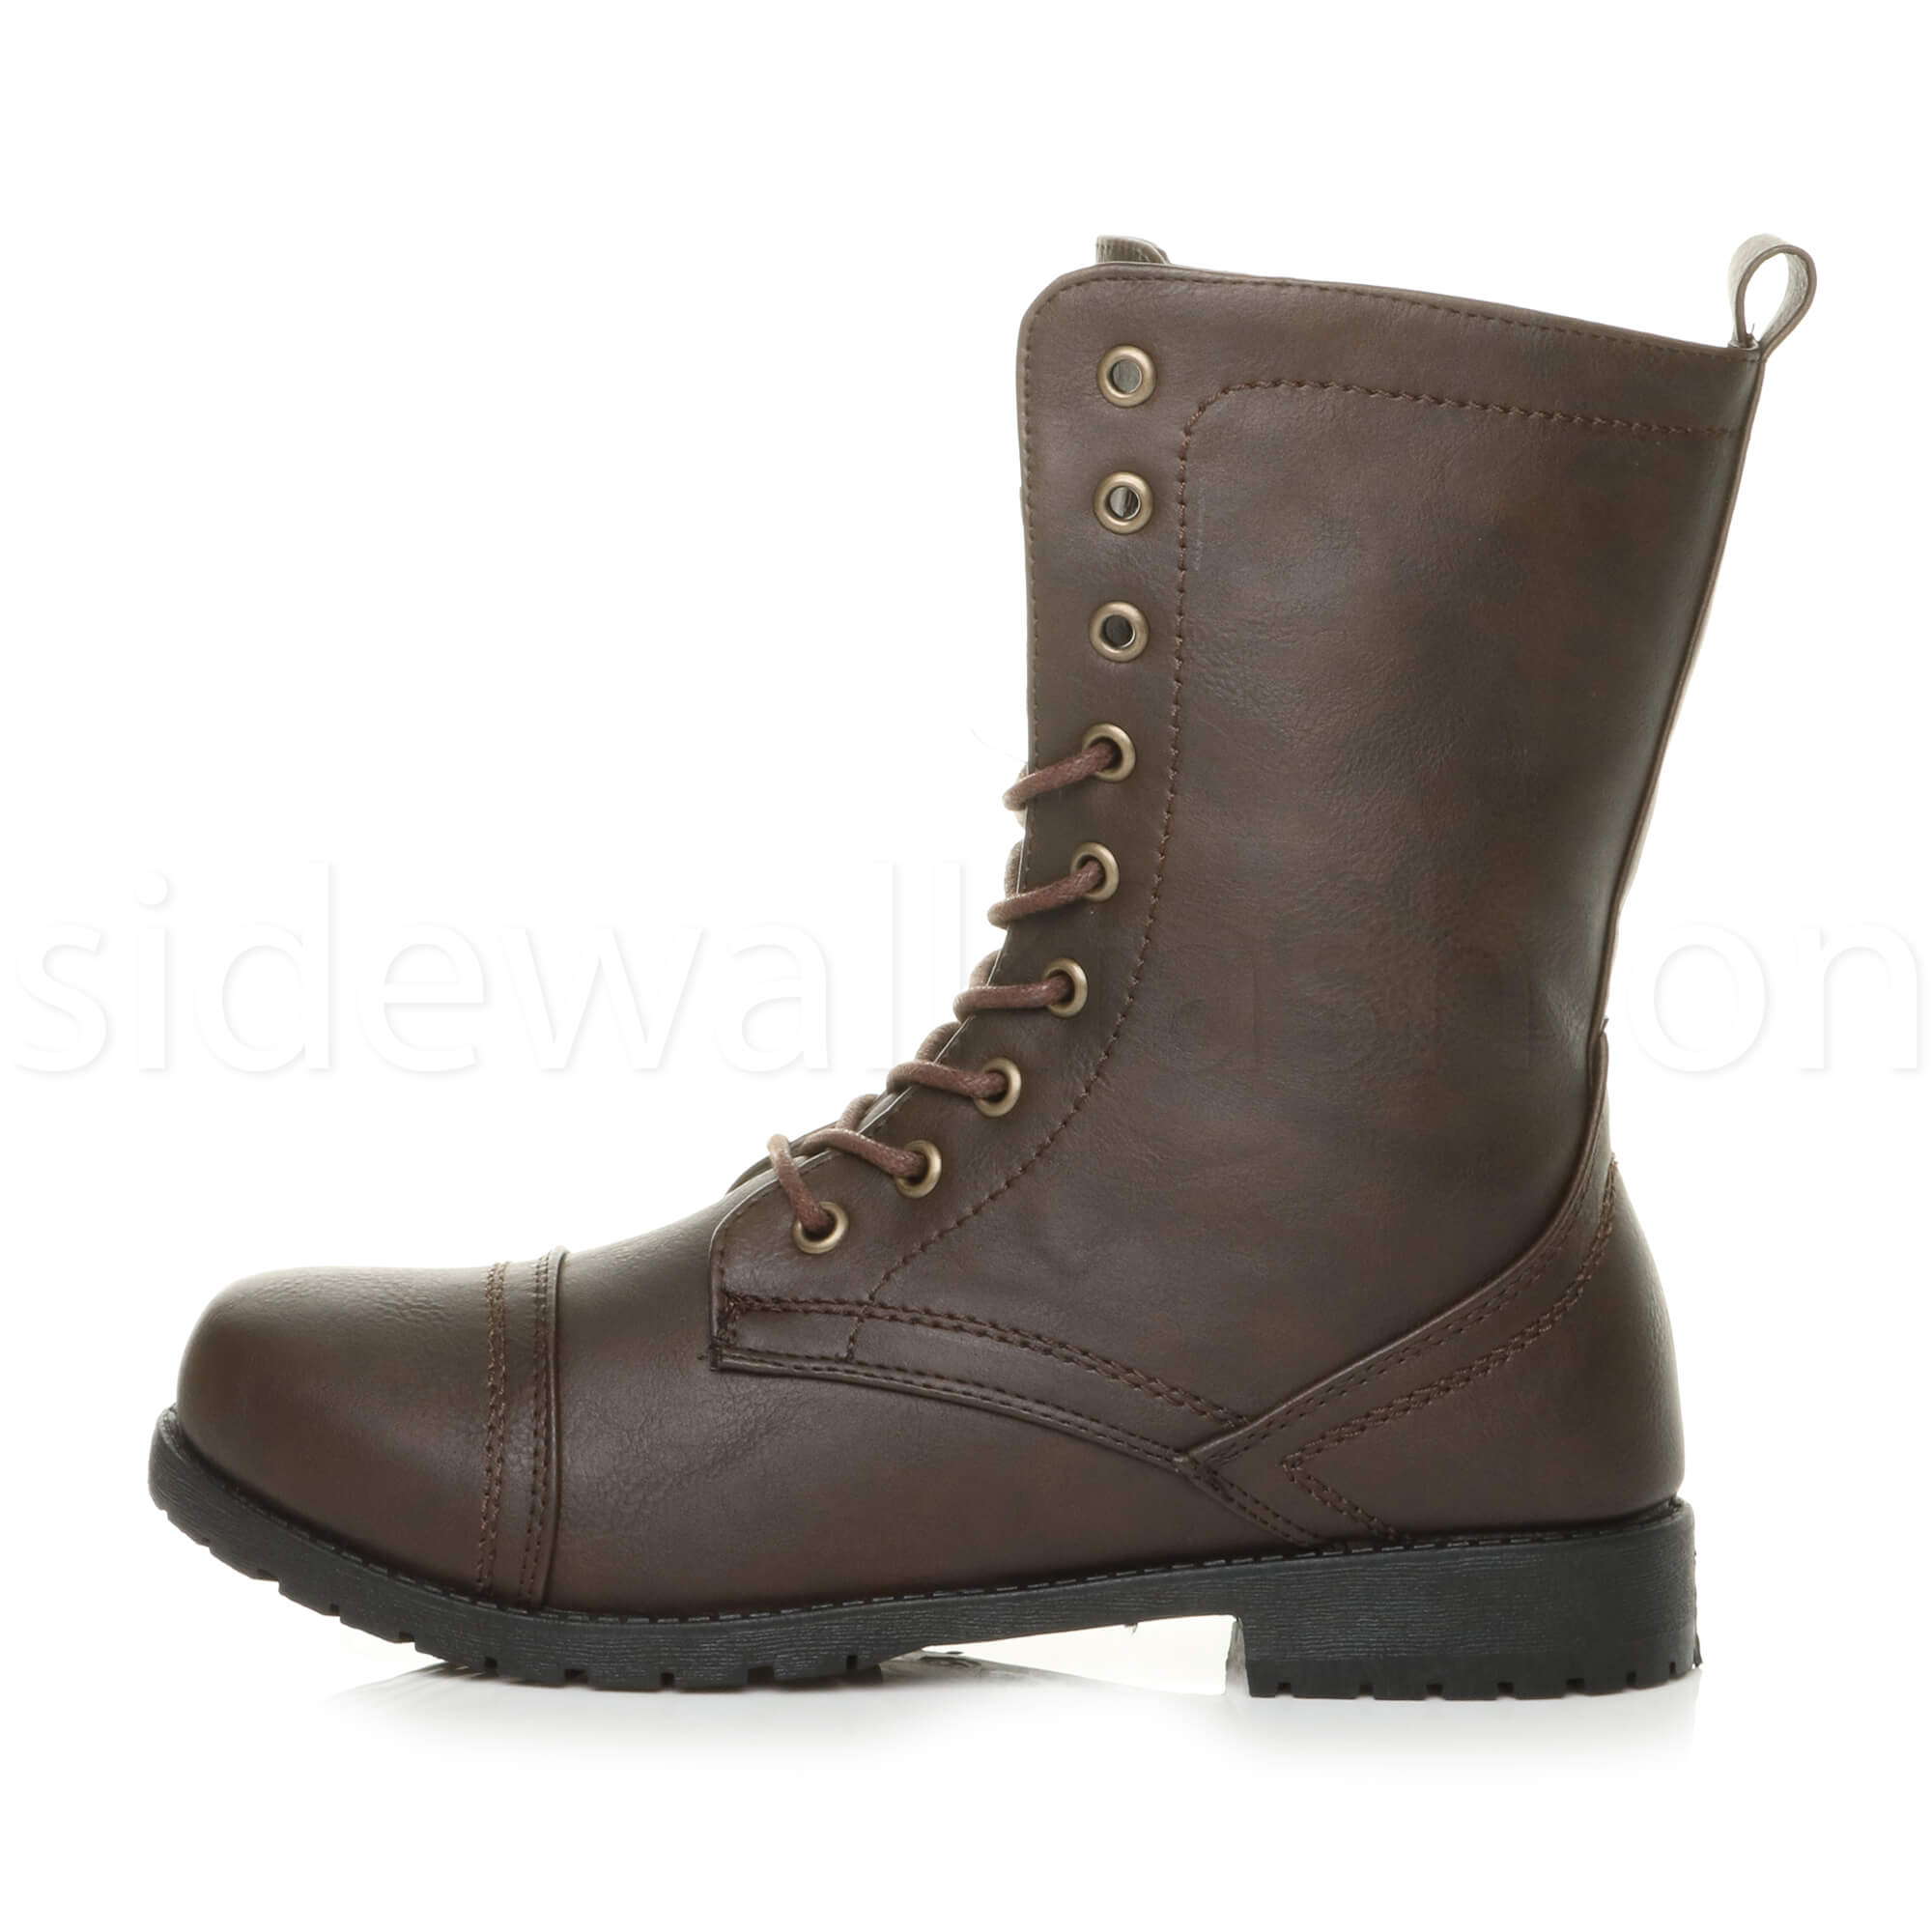 Womens-ladies-low-heel-flat-lace-up-zip-combat-biker-military-ankle-boots-size thumbnail 75